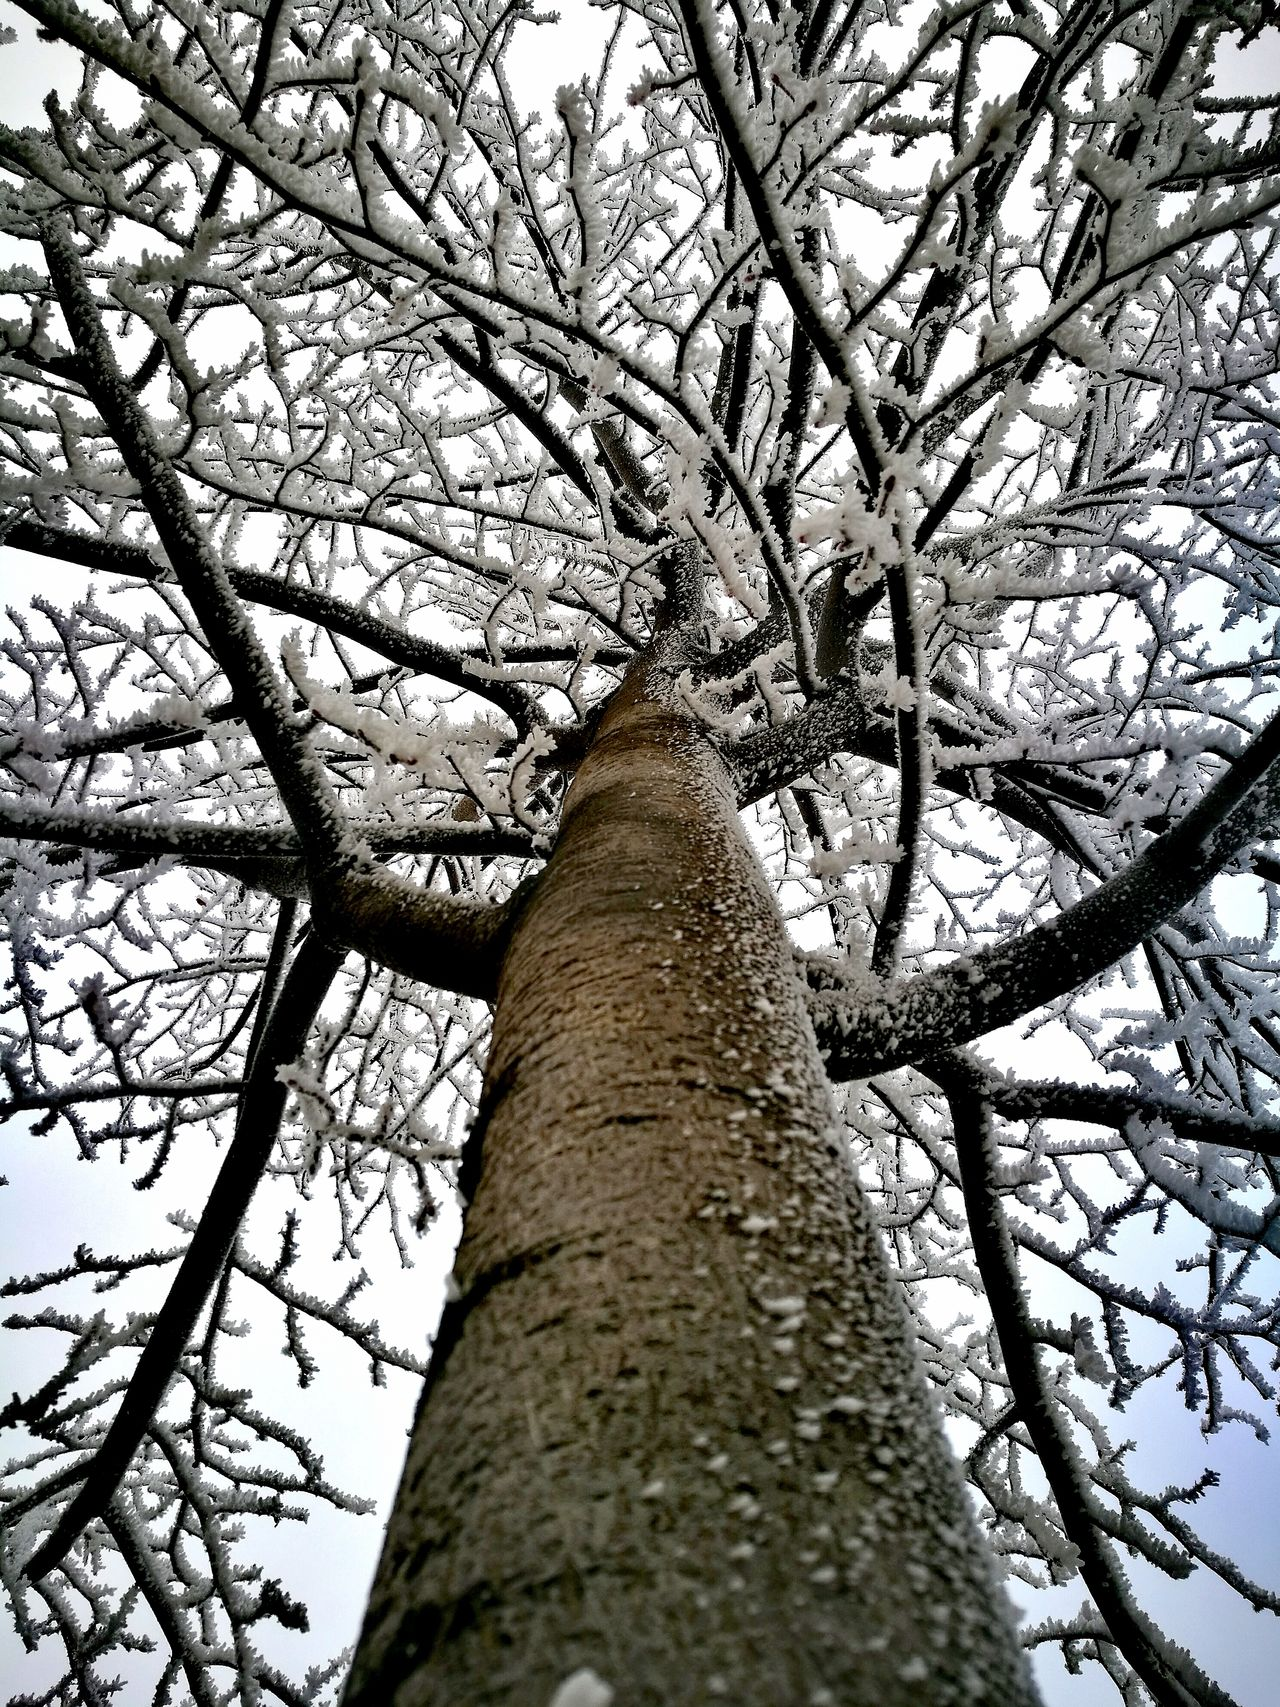 Tree Low Angle View Nature Tree Trunk Growth Beauty In Nature No People Sky Outdoors Branch Day Close-up Close Up Technology Cold Temperature EyeEmNewHere Winter Snow ❄ Nature Tree White White Color